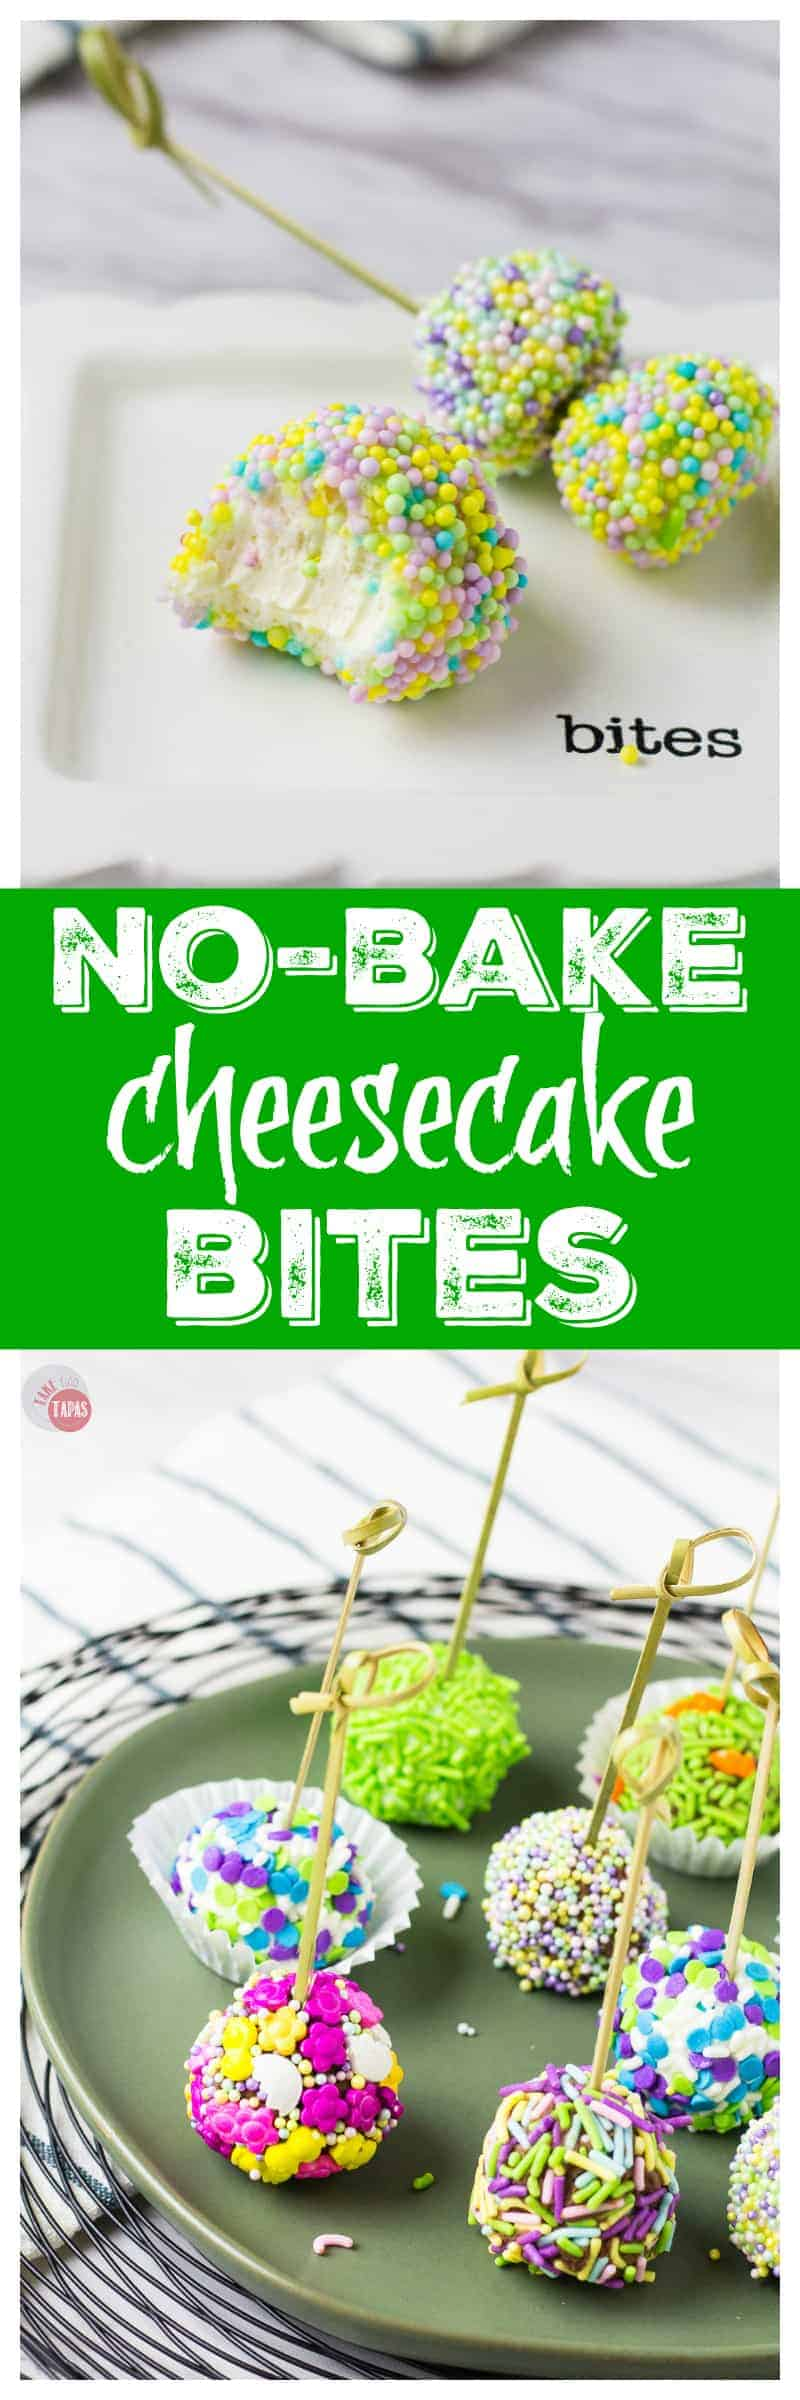 Simple Spring Dessert | Take Two Tapas | No-Bake Cheesecake Bites #AD #FlavorYourSpring #Dessert #Cheesecake #Bites #MothersDay #NoBake